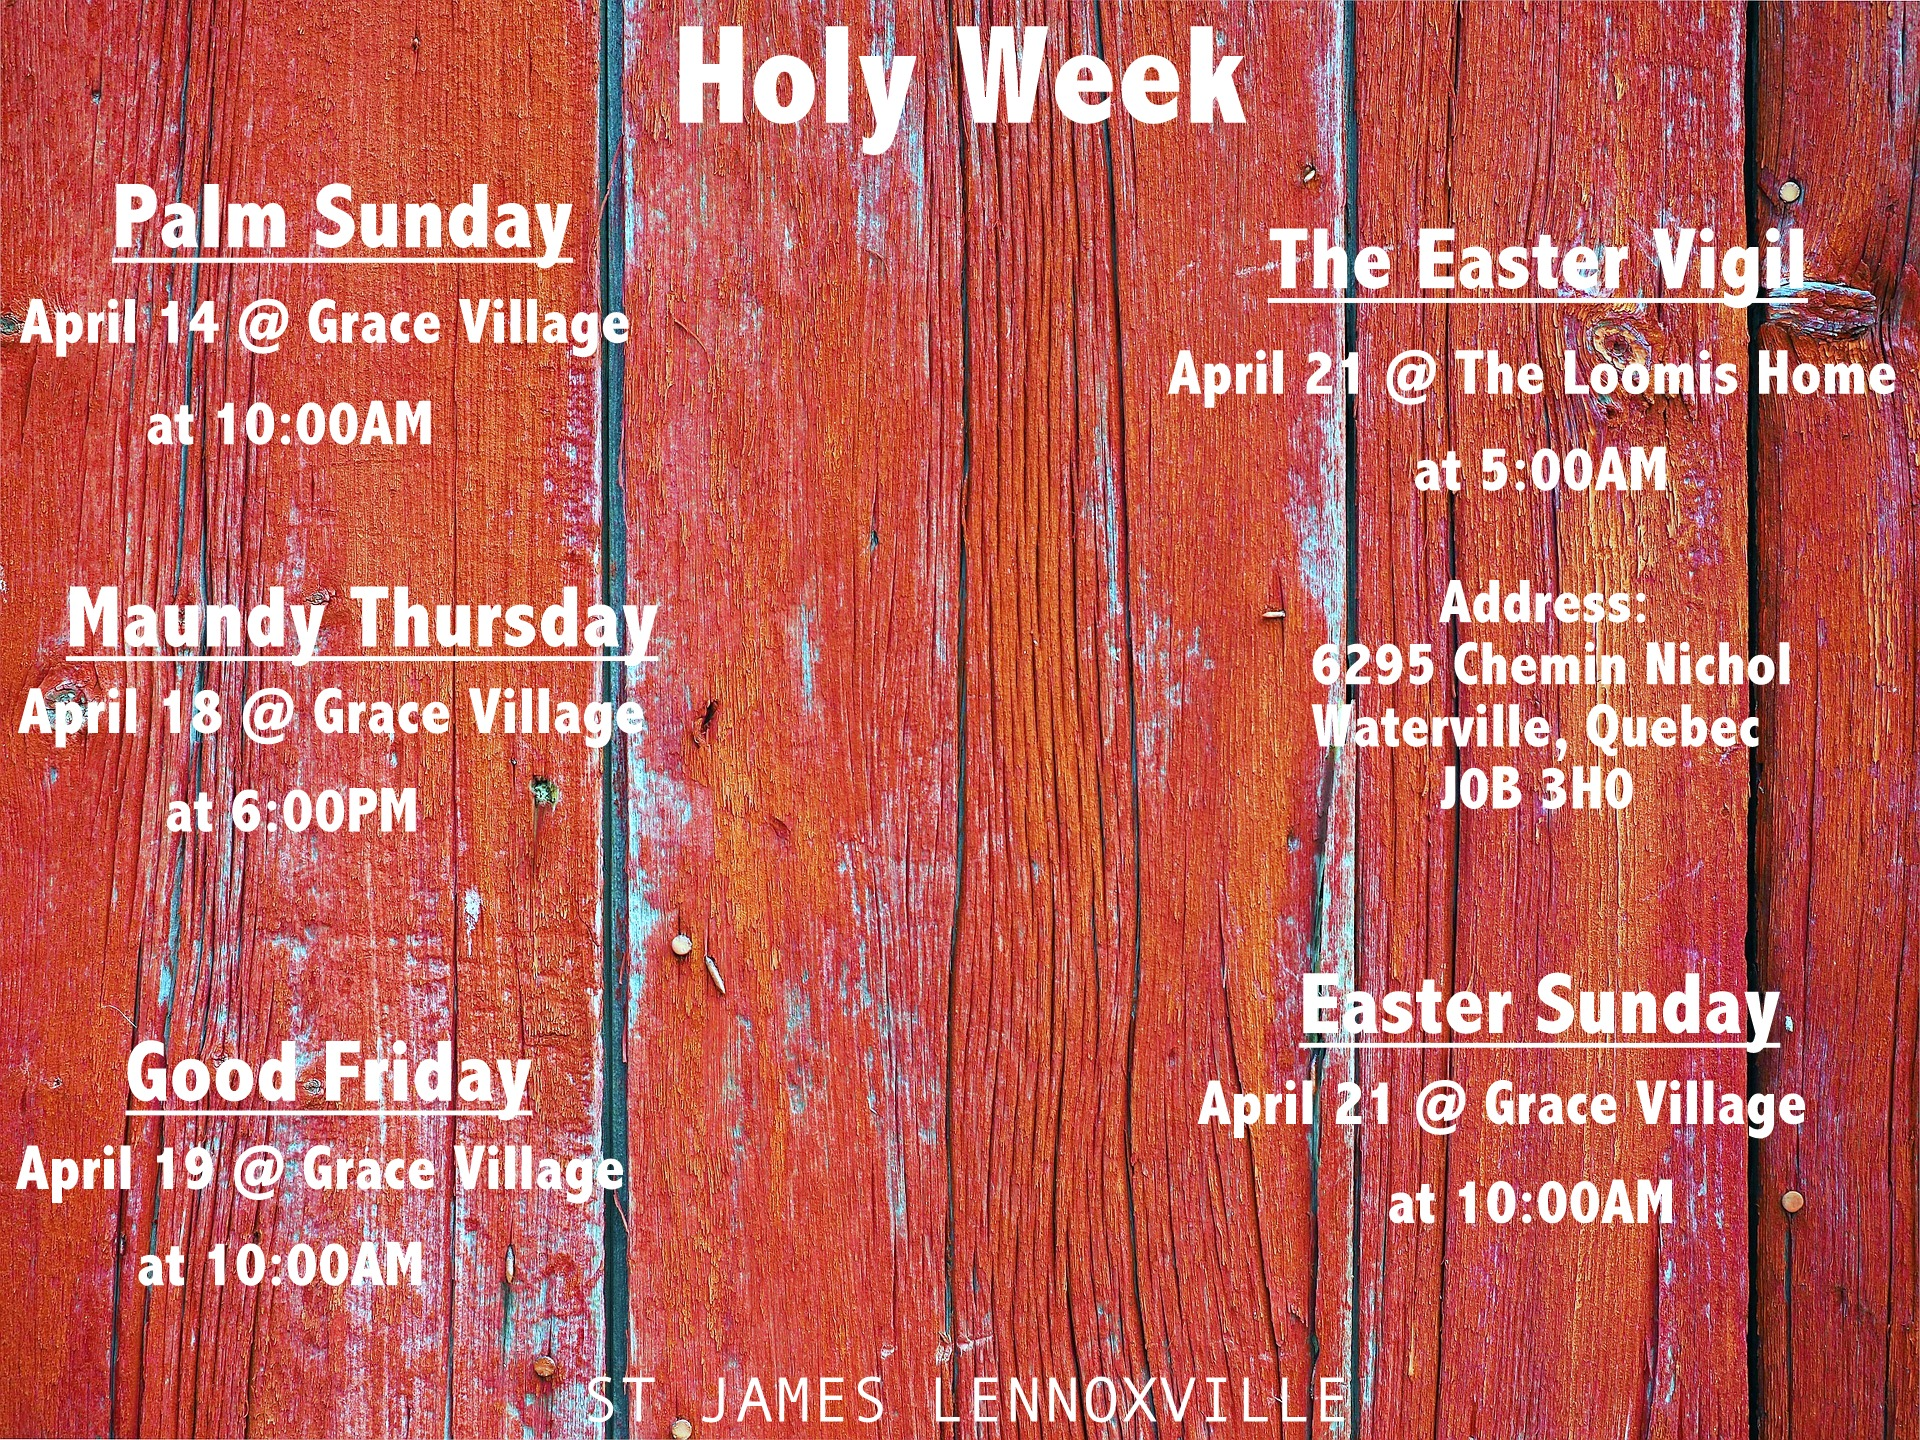 Holy Week Schedule.jpg